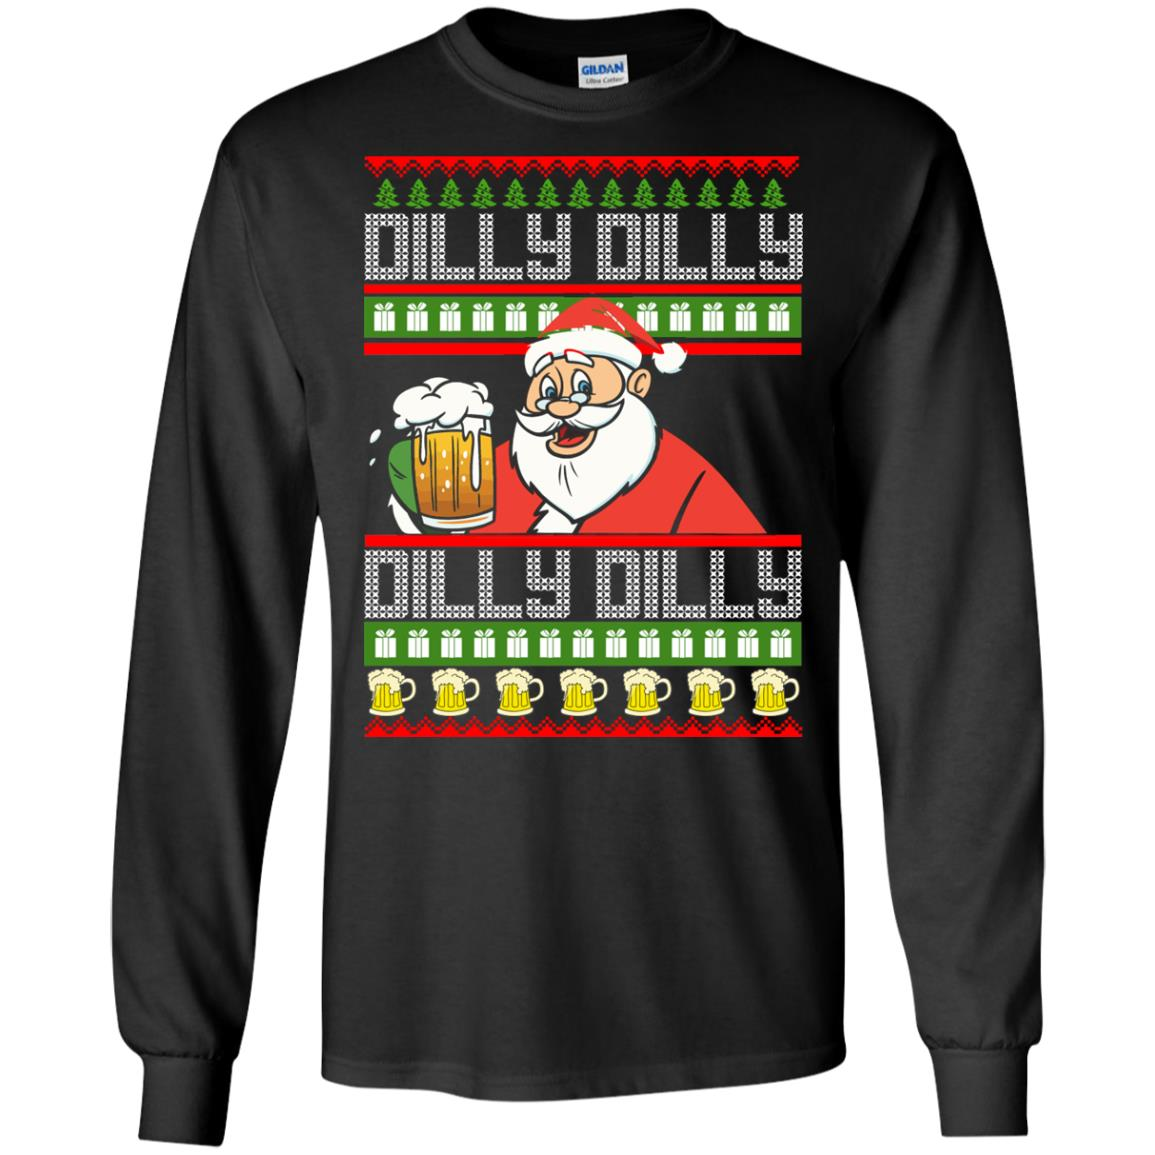 image 4182 - Dilly Dilly Christmas Sweater, Shirt, Hoodie